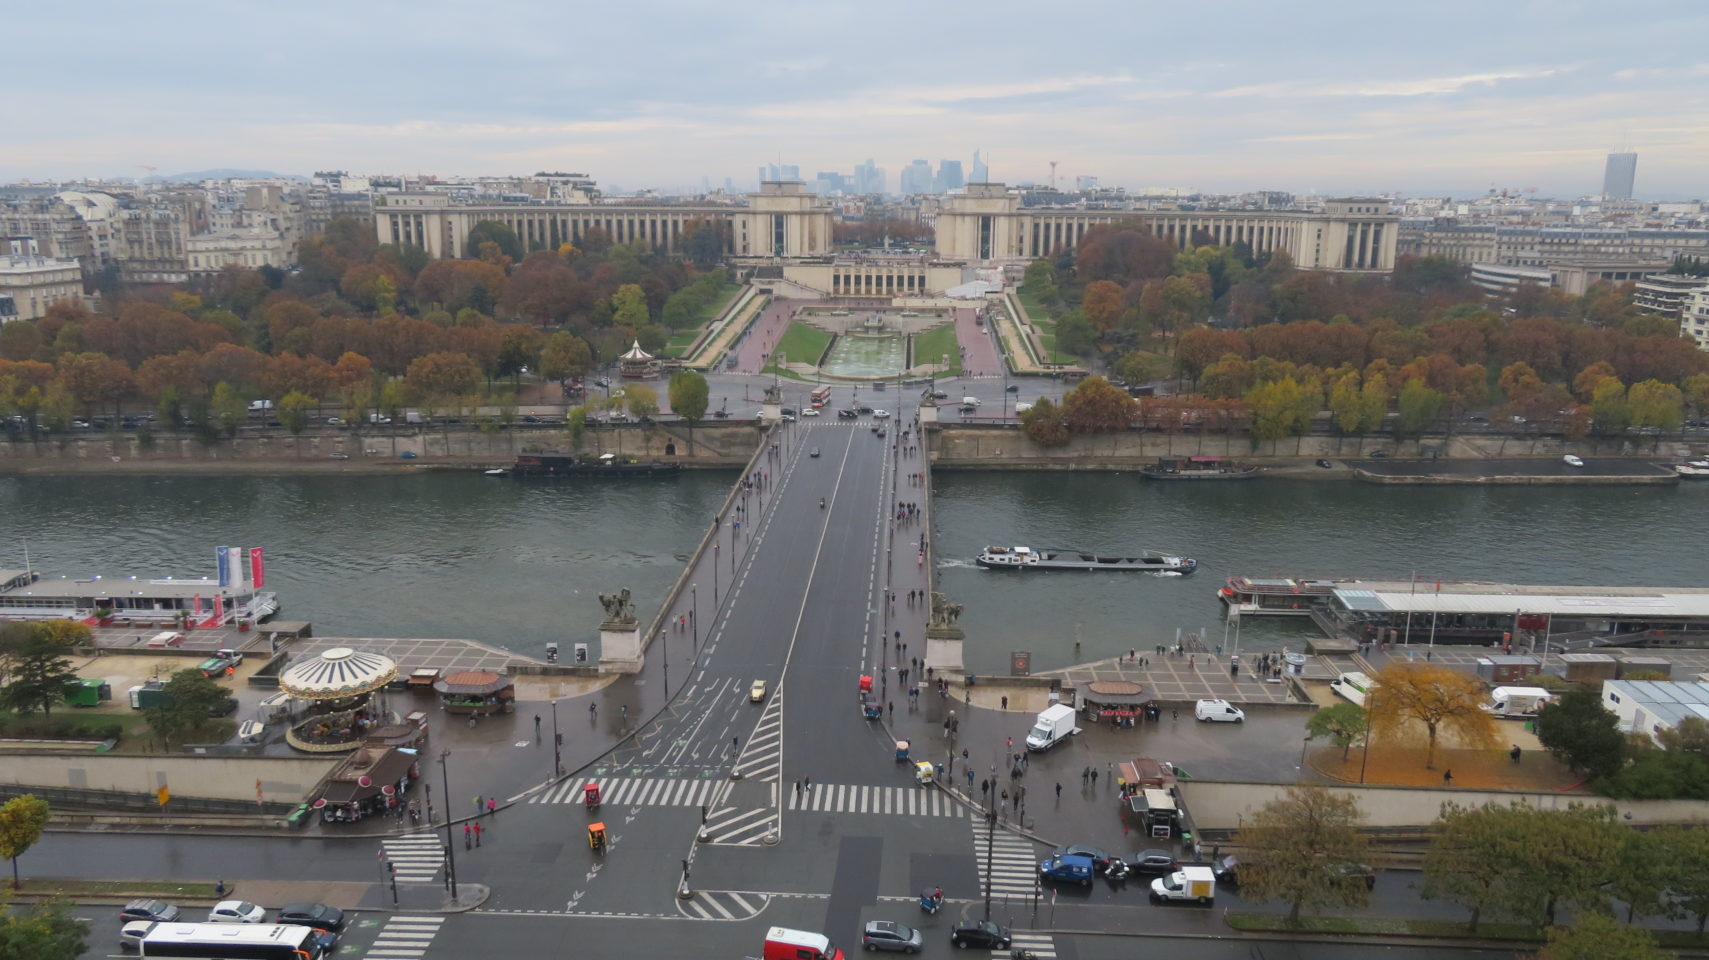 Trocadero and Paris viewed from the Eiffel Tower ( Paris and Normandie AMAWaterways Cruise)